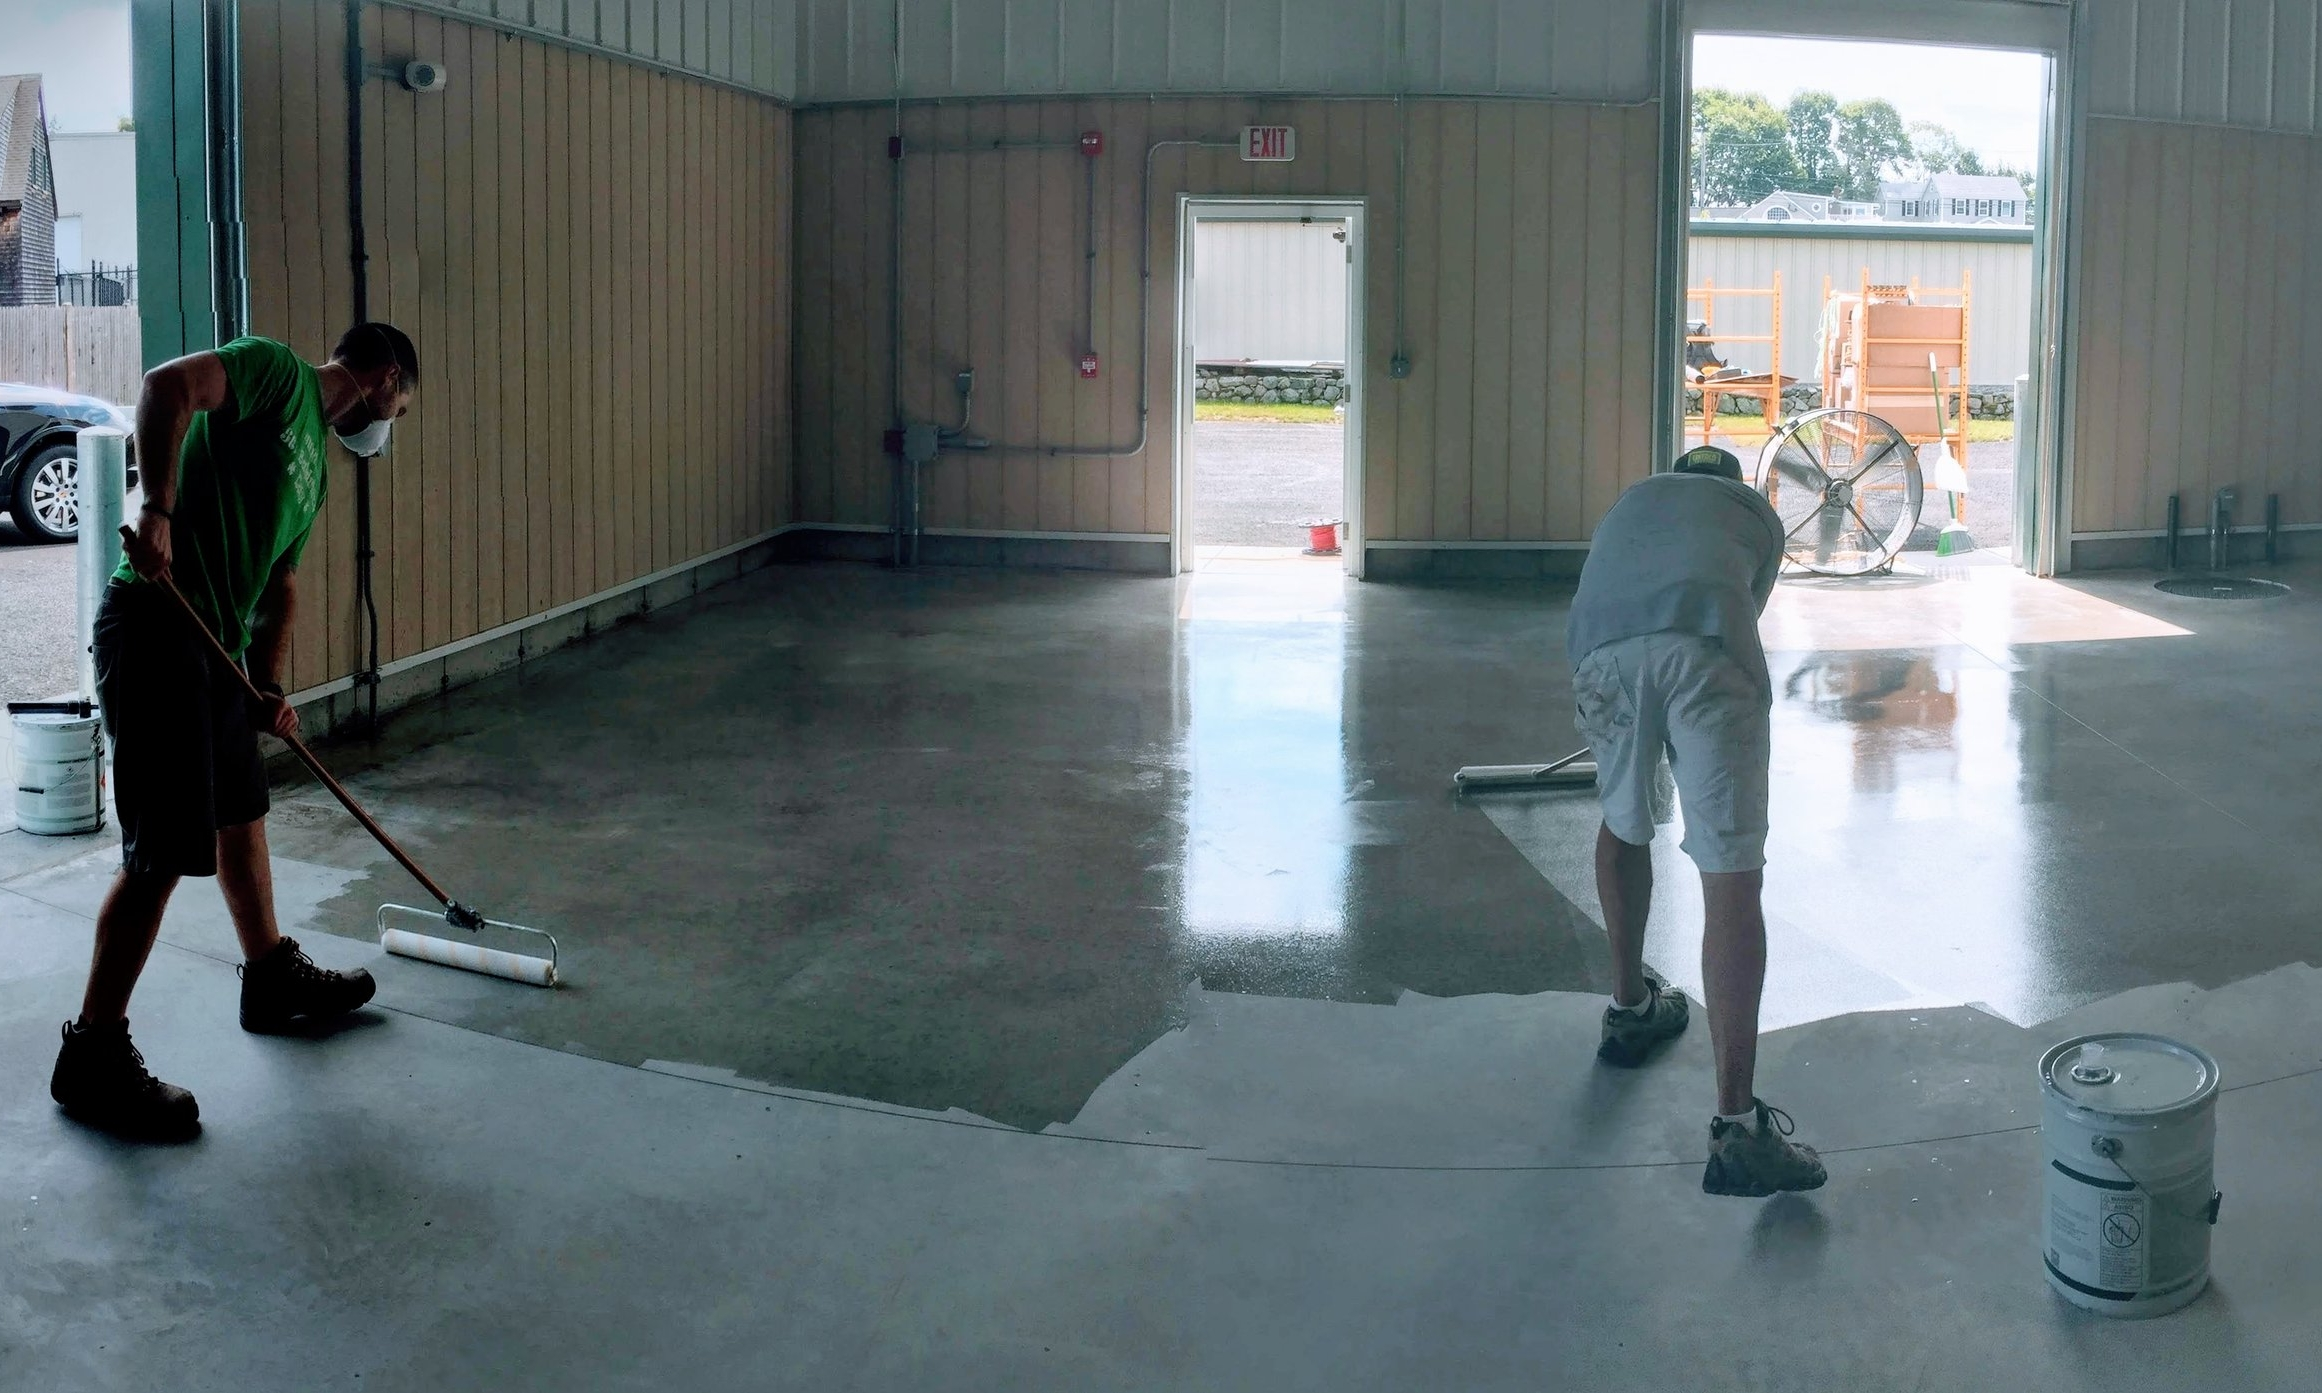 Brewers Matt and Kyle seal the floors in prep for our equipment's arrival.